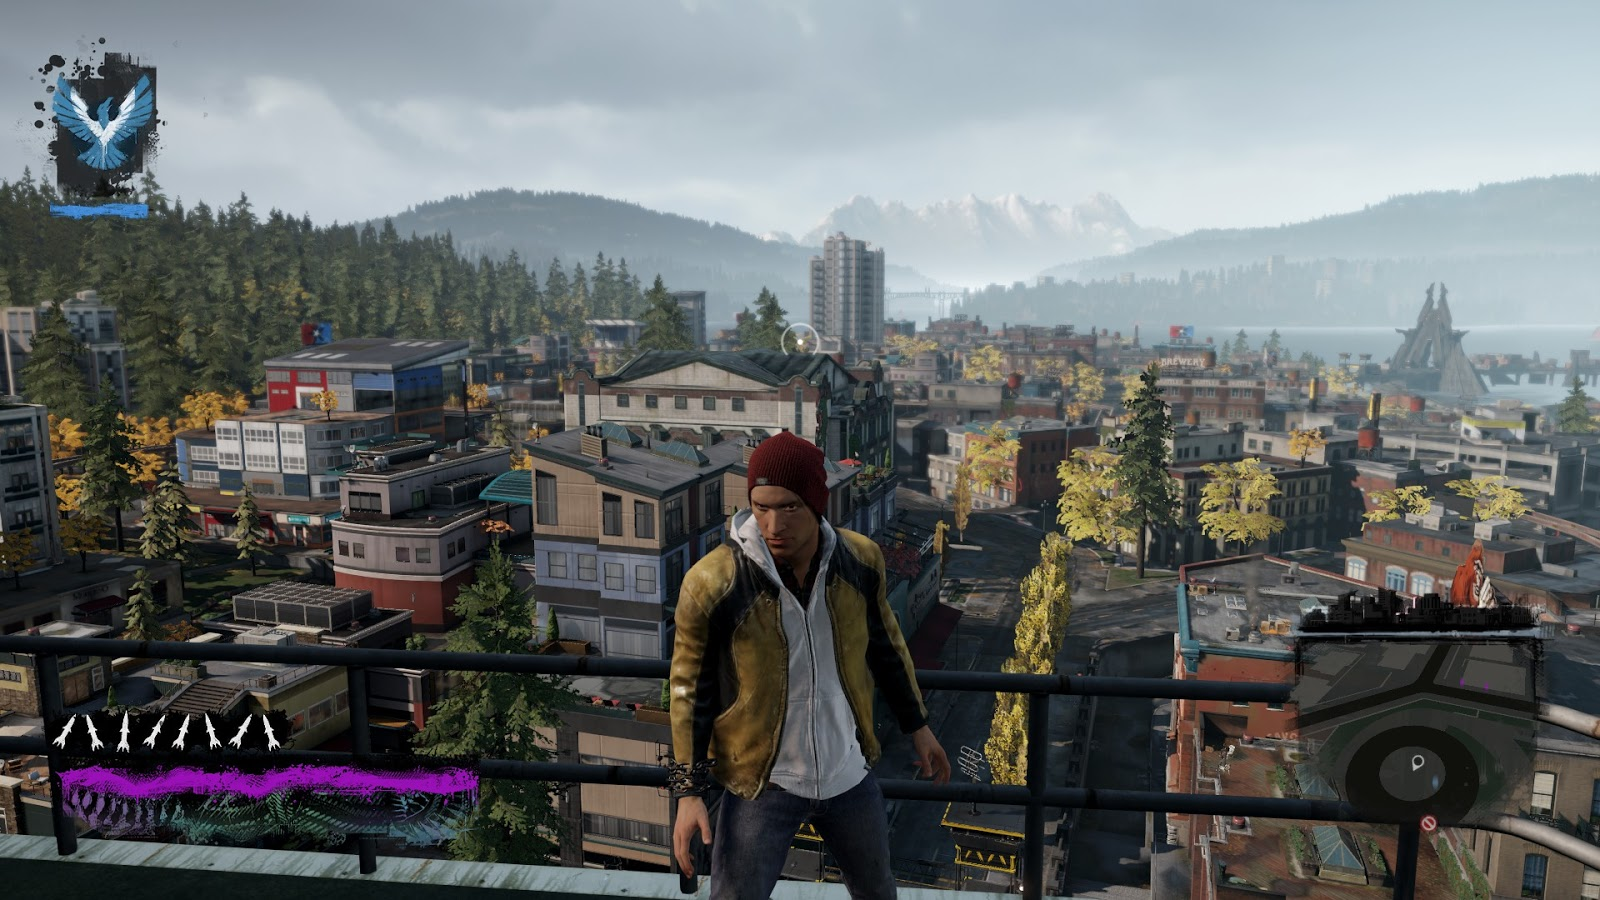 Bentendo Blog: inFAMOUS Second Son on infamous blast shard map, infamous second son queen anne map, infamous second son seattle flag, infamous second son district map, minecraft seattle map, infamous second son city map, infamous 2 map, seattle science center map, infamous second son game map,